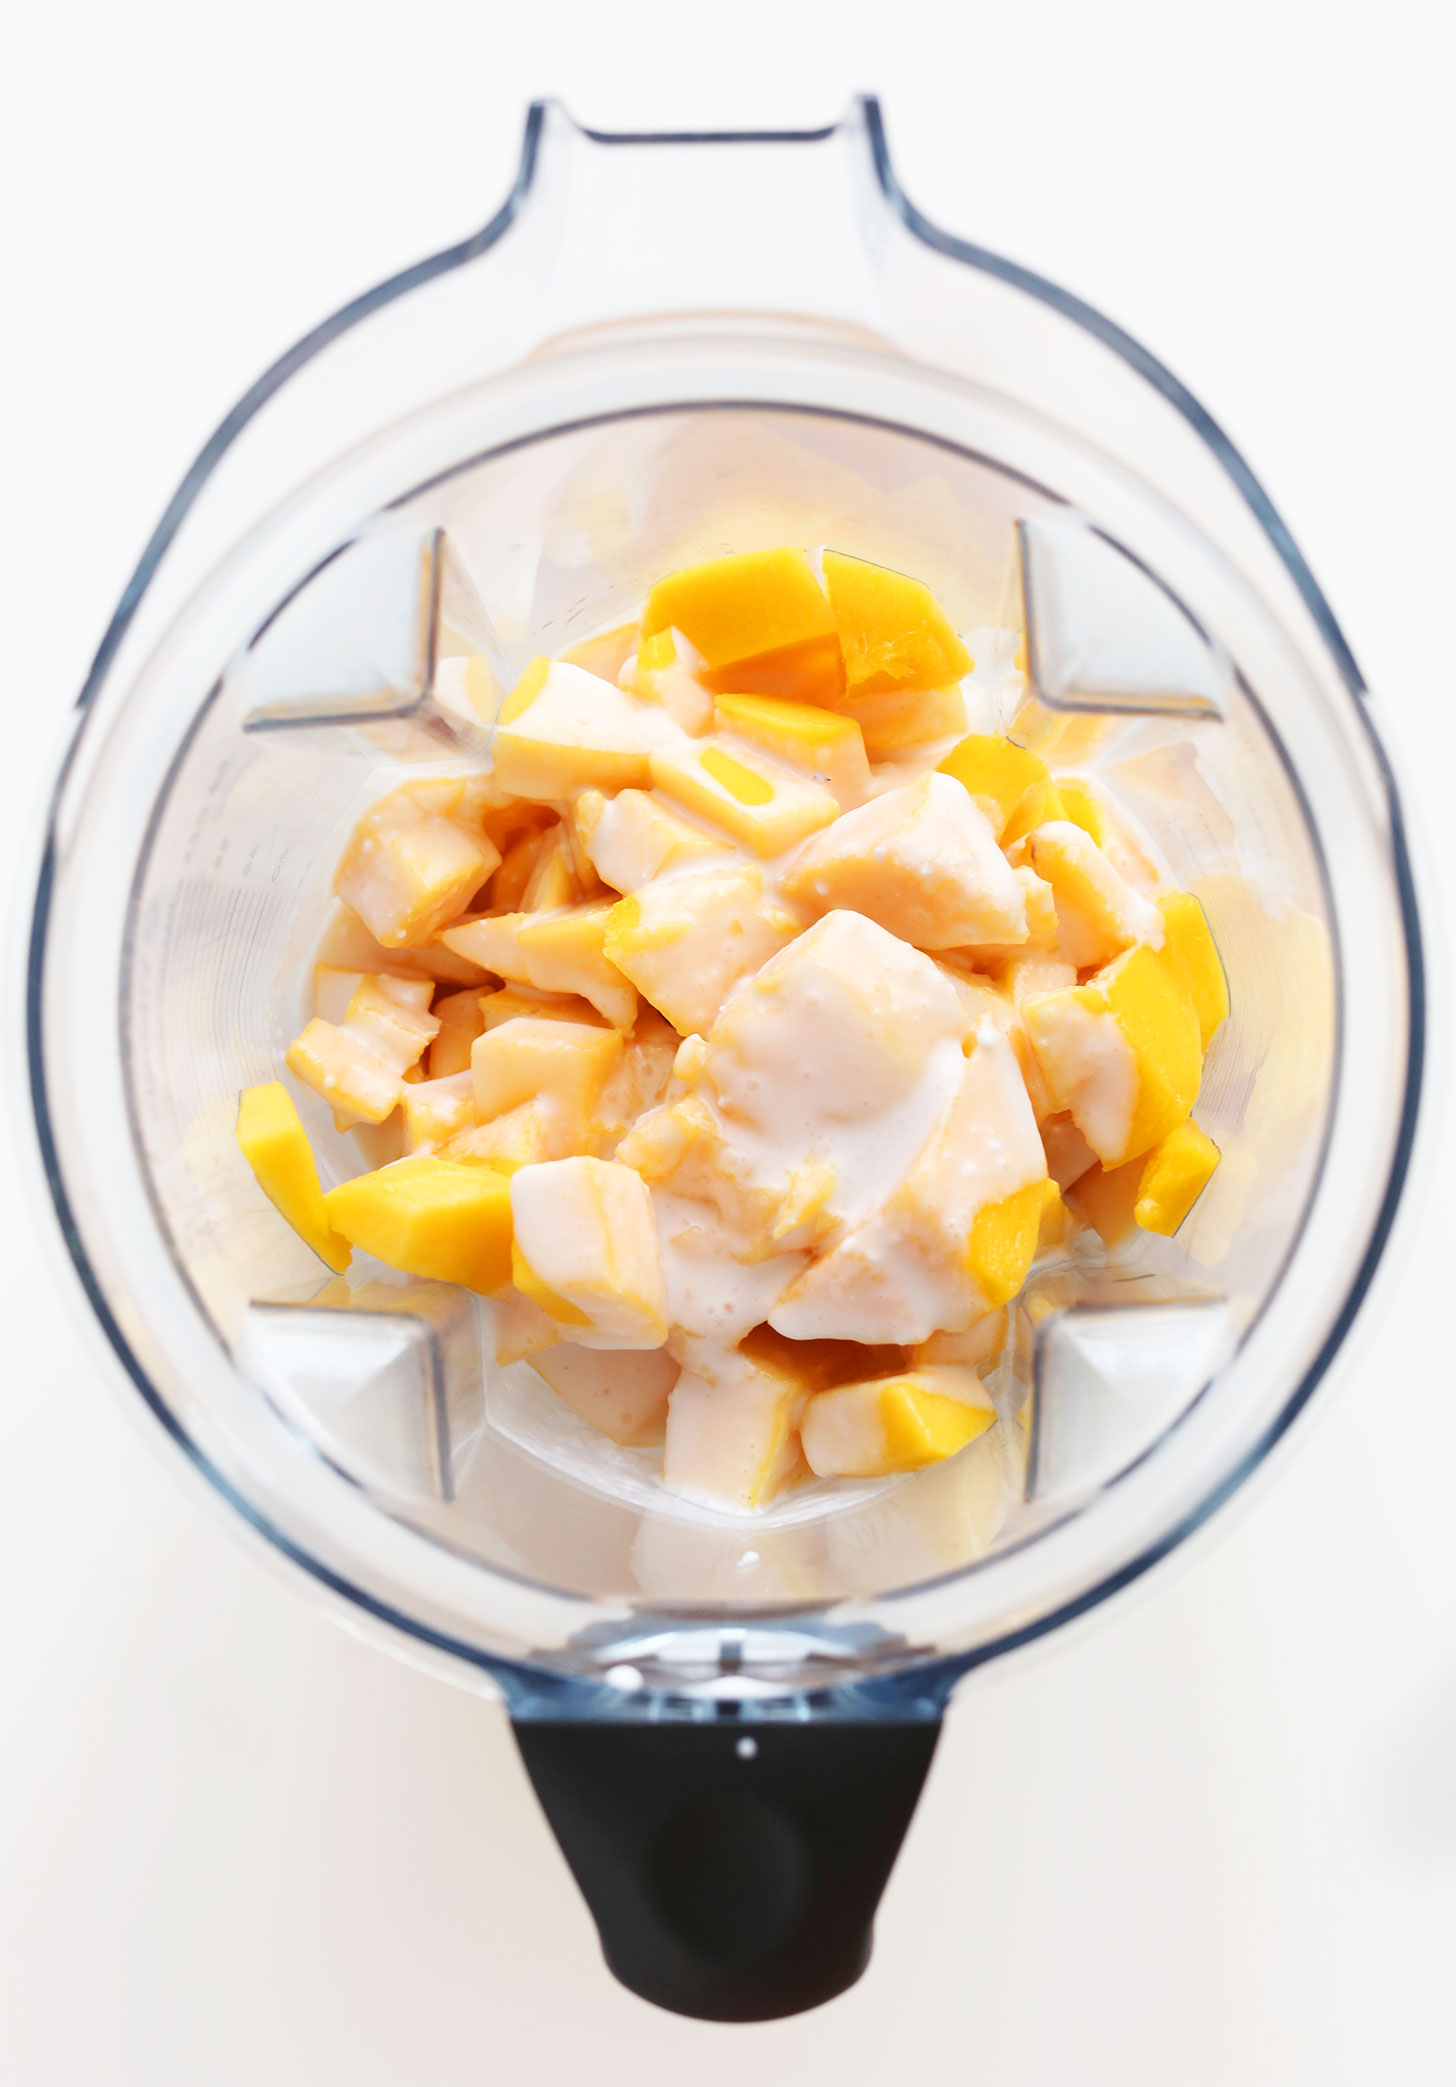 Blender with ingredients for making homemade Mango Raspberry Coconut Sorbet